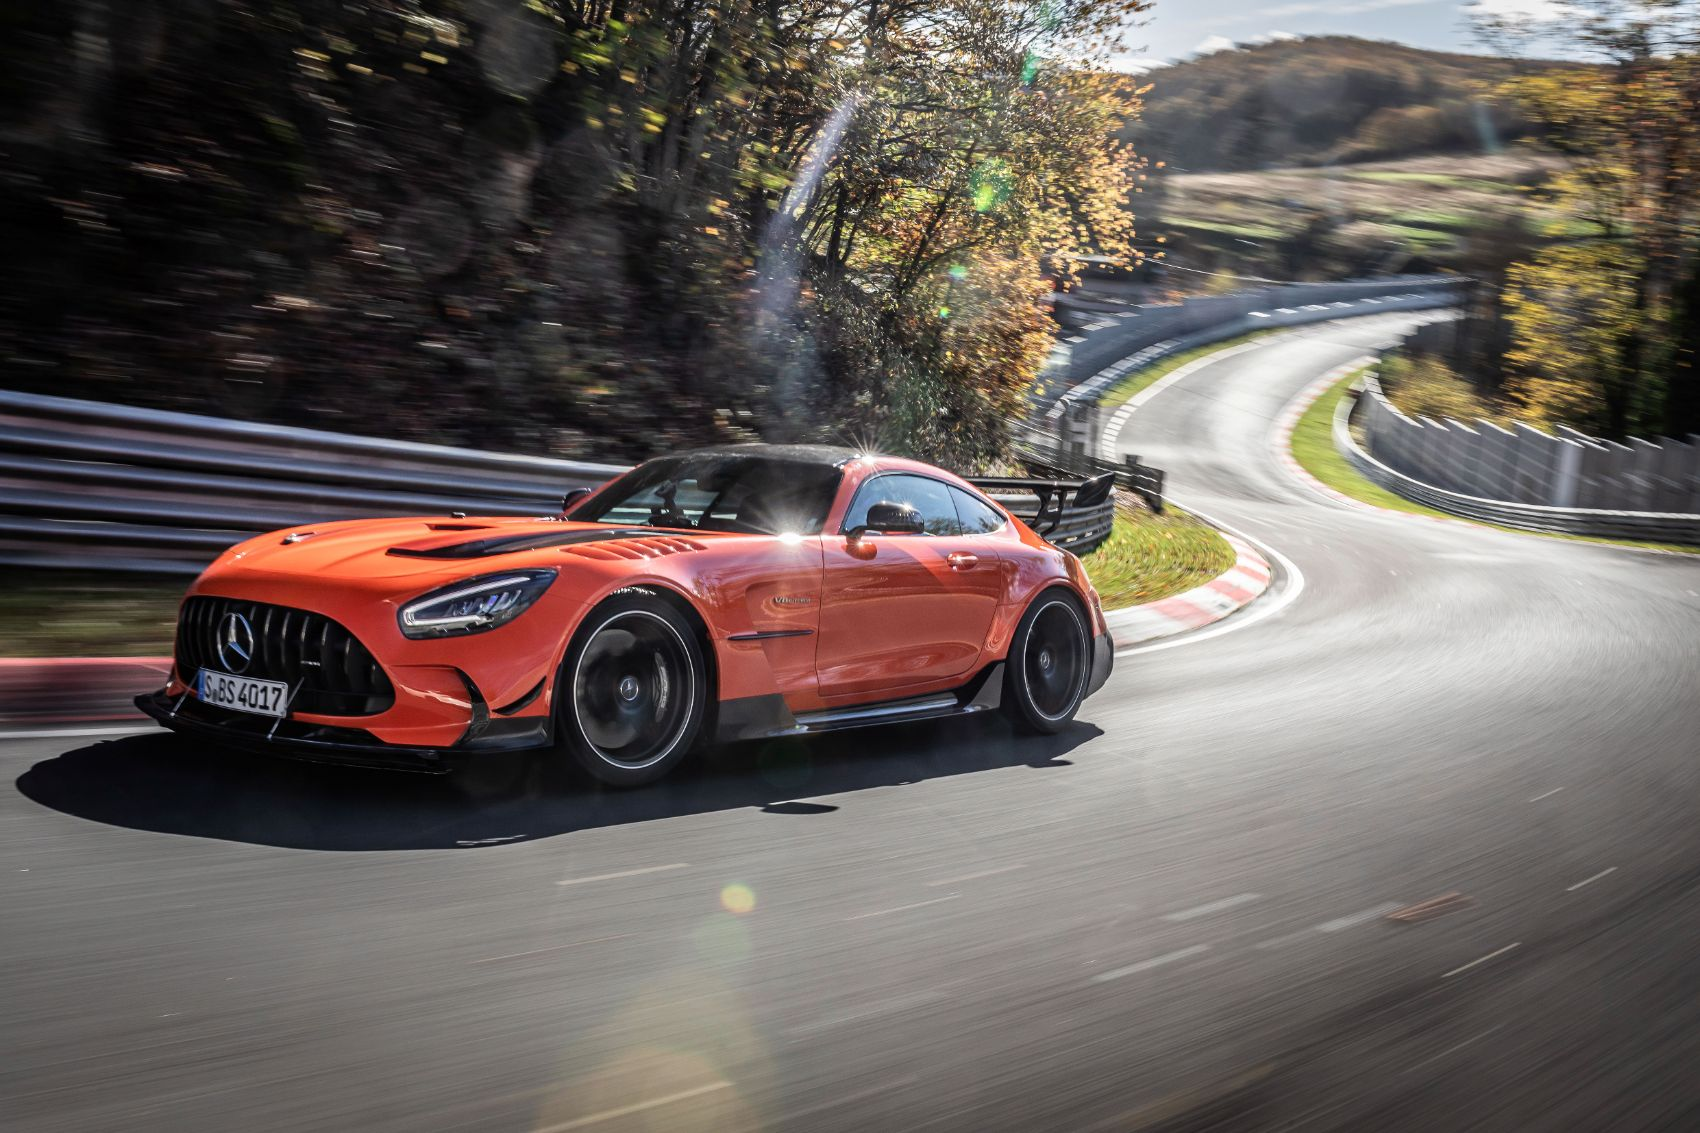 2021 Mercedes-AMG GT Black Series Scores Record Lap On The Nürburgring Nordschleife